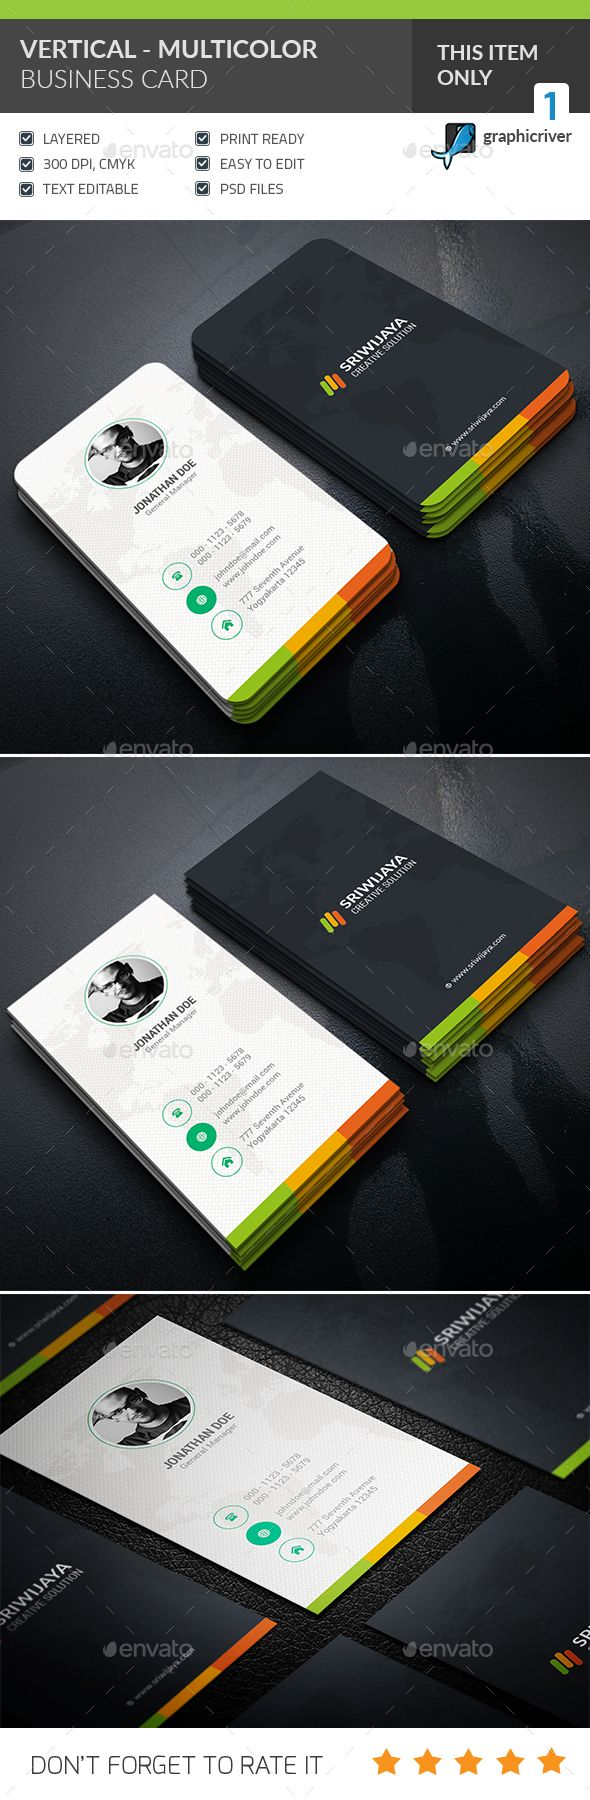 Best 25+ Creative business card designs ideas on Pinterest | Best ...